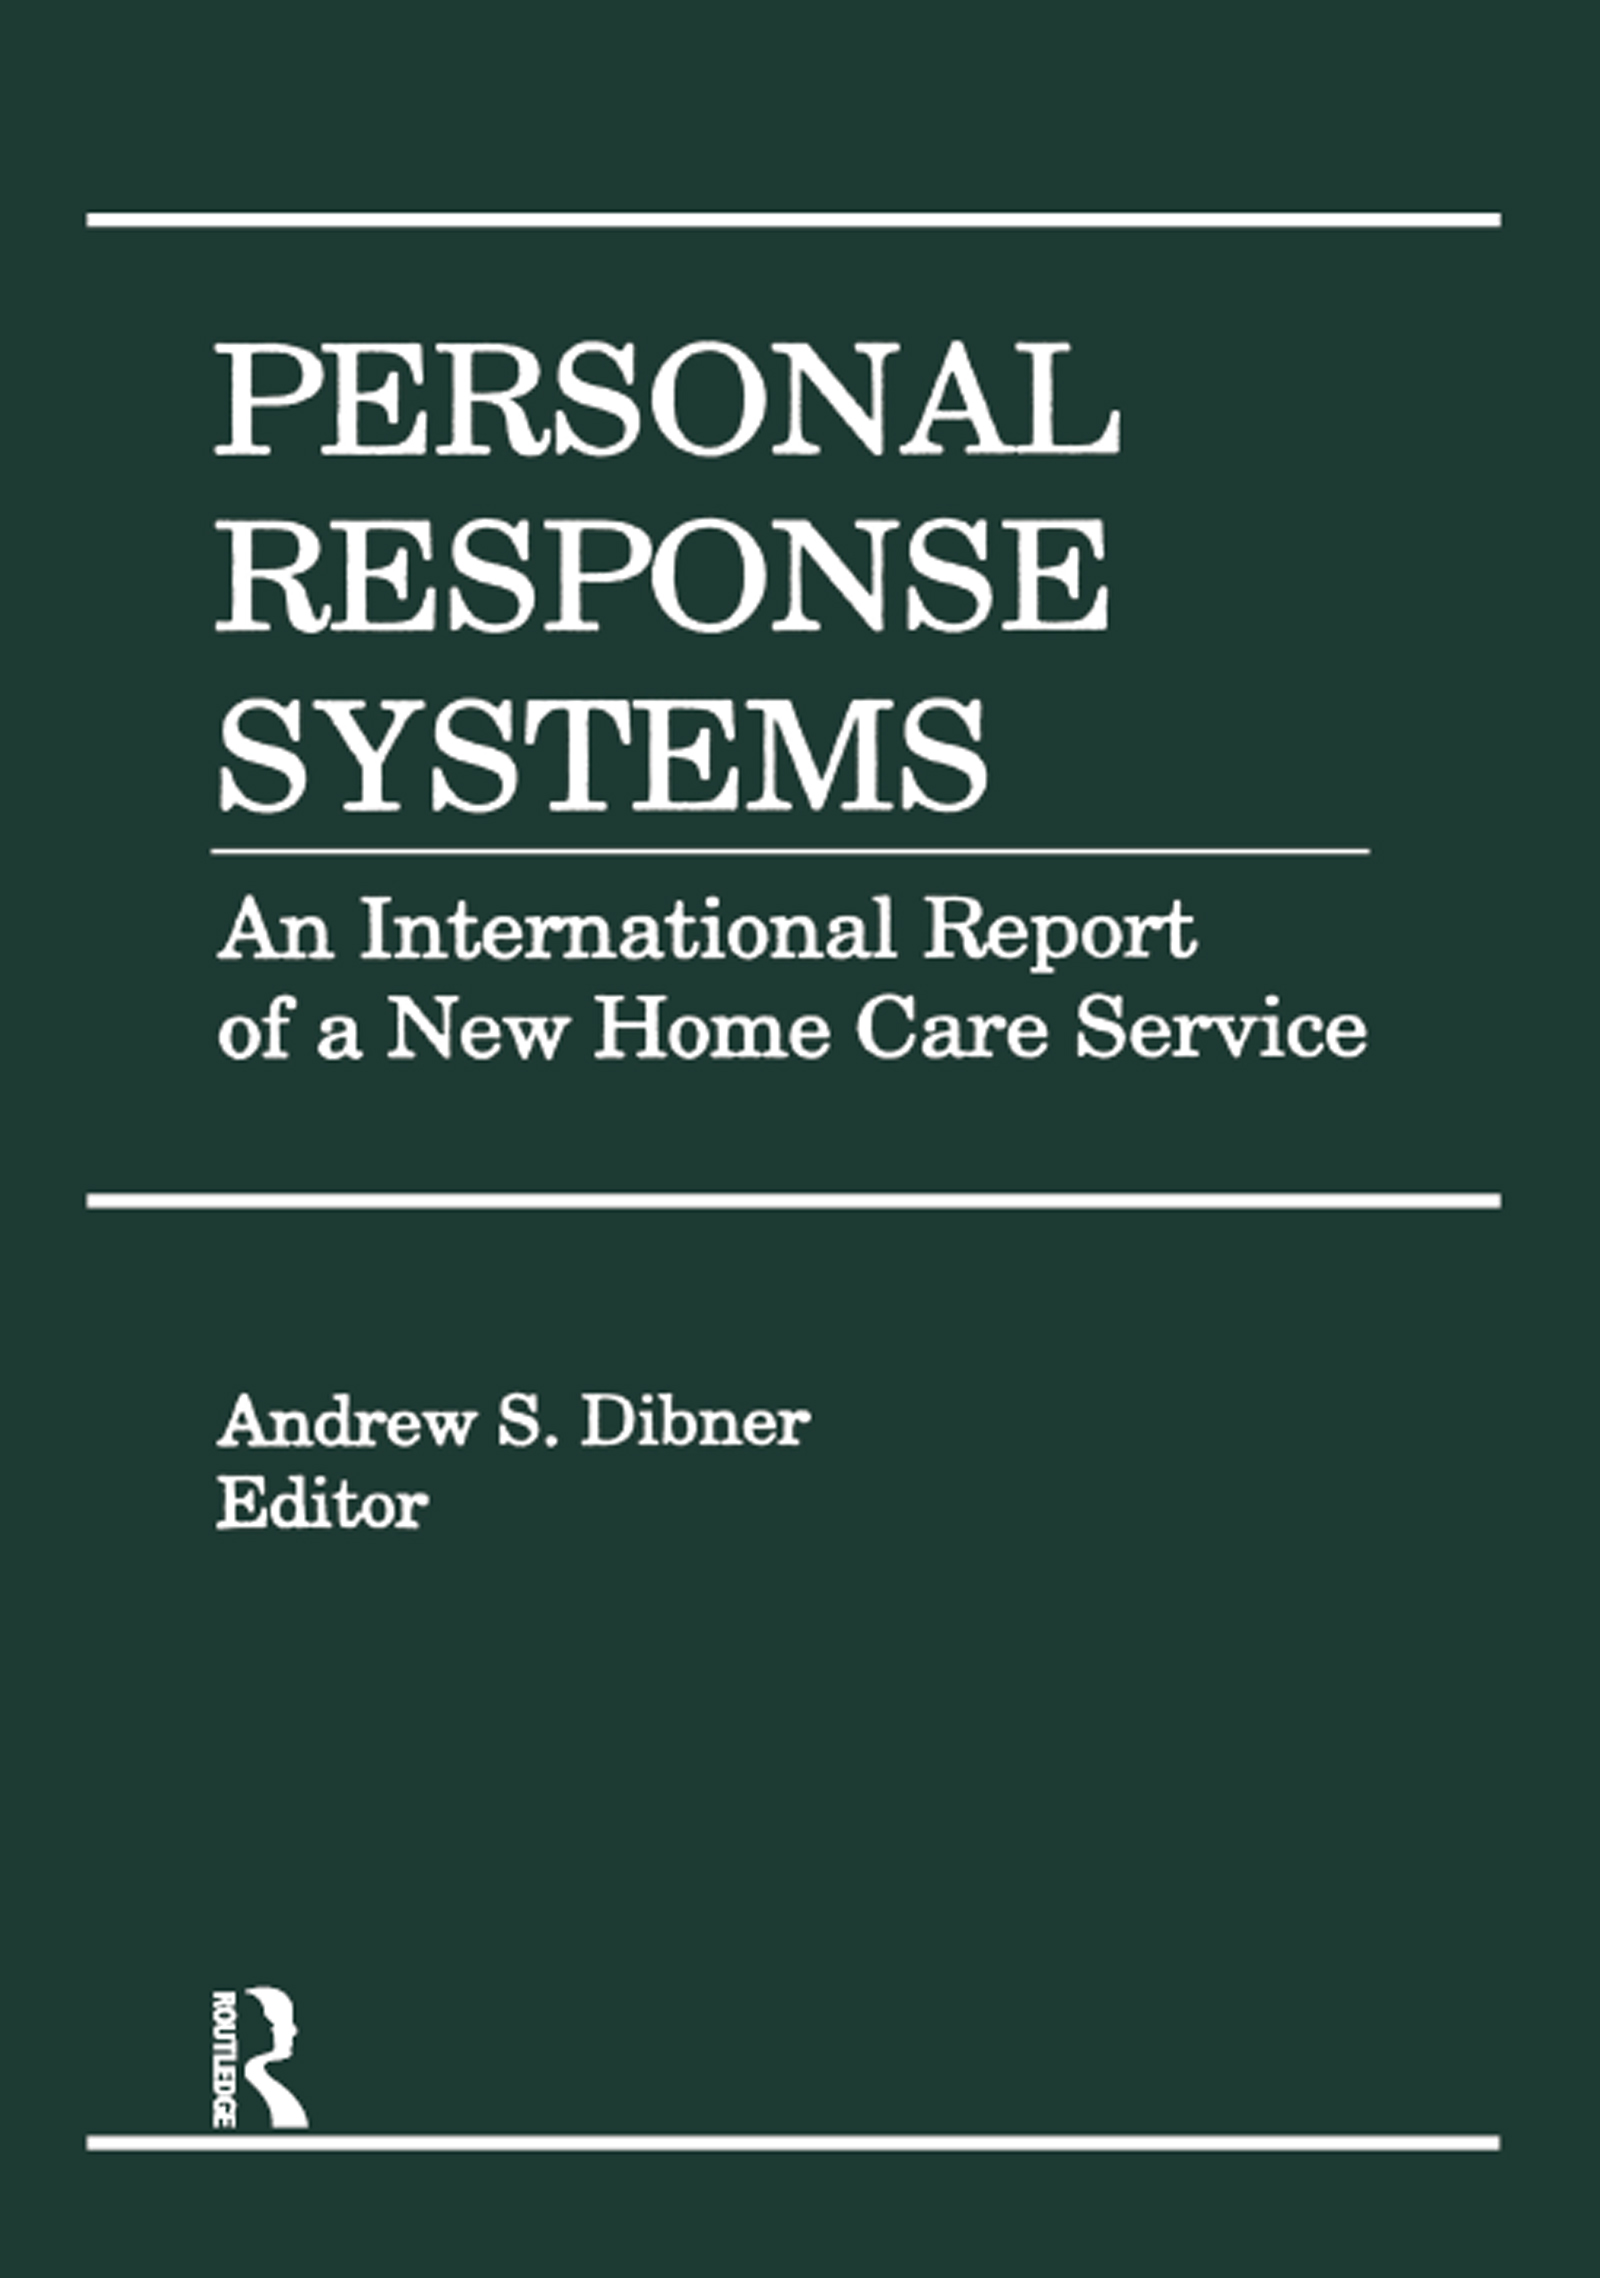 Alarms and Telephones in Emergency Response–Research from the United Kingdom